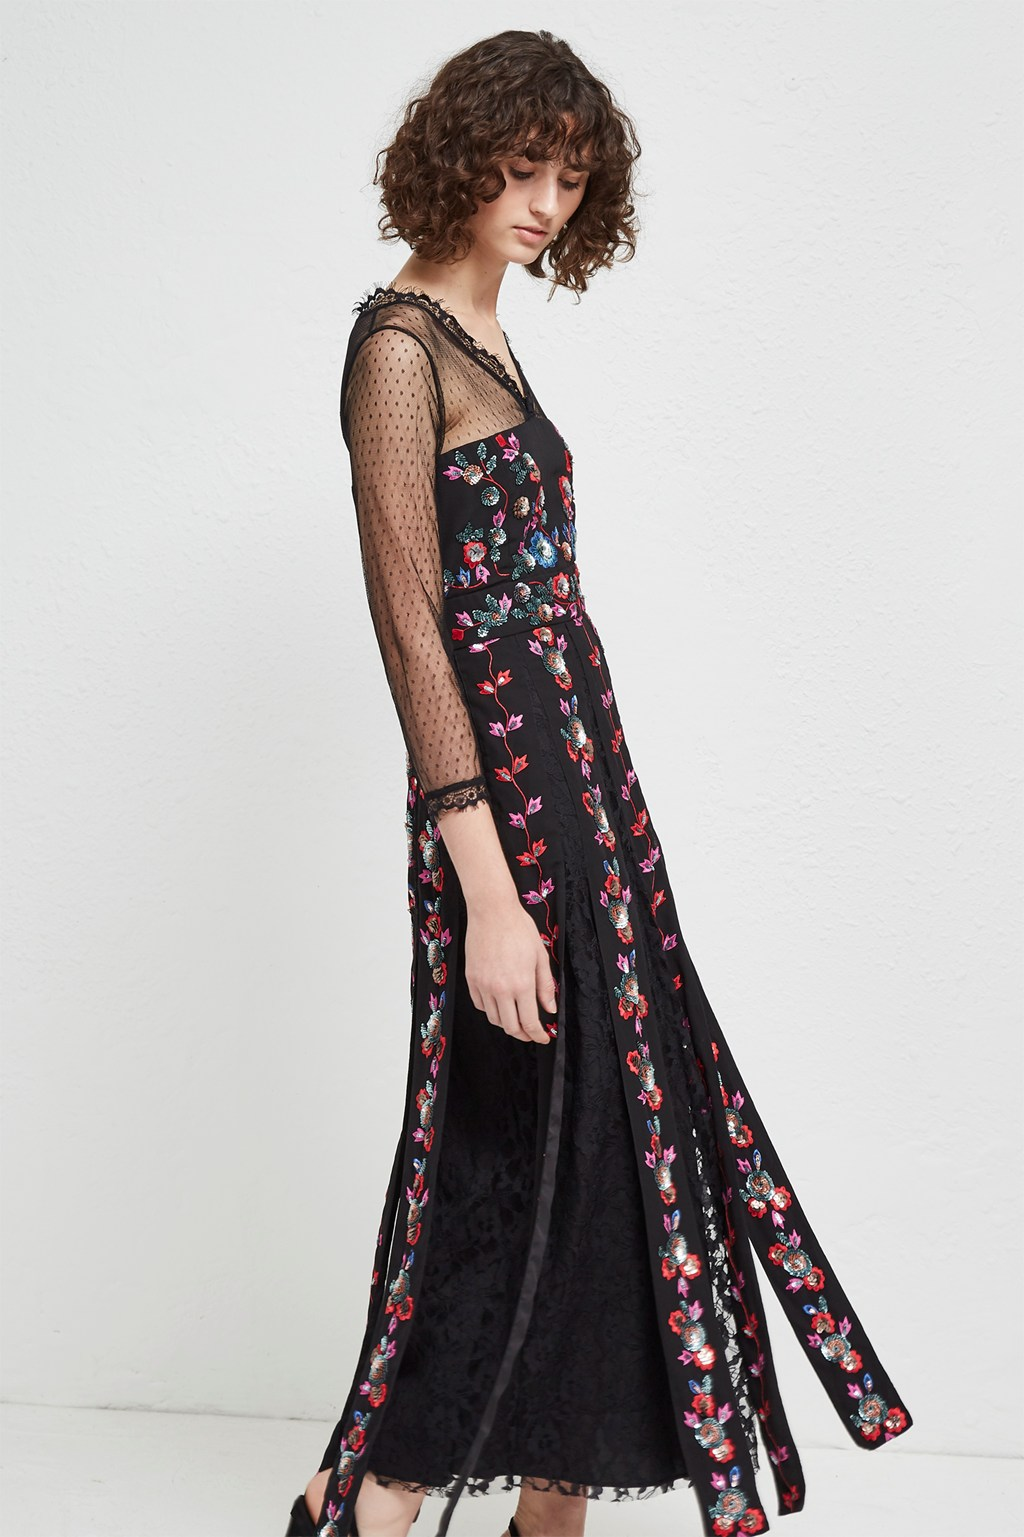 30c5d282838 Edith Floral Long Sleeved Maxi Dress. loading images... loading images.